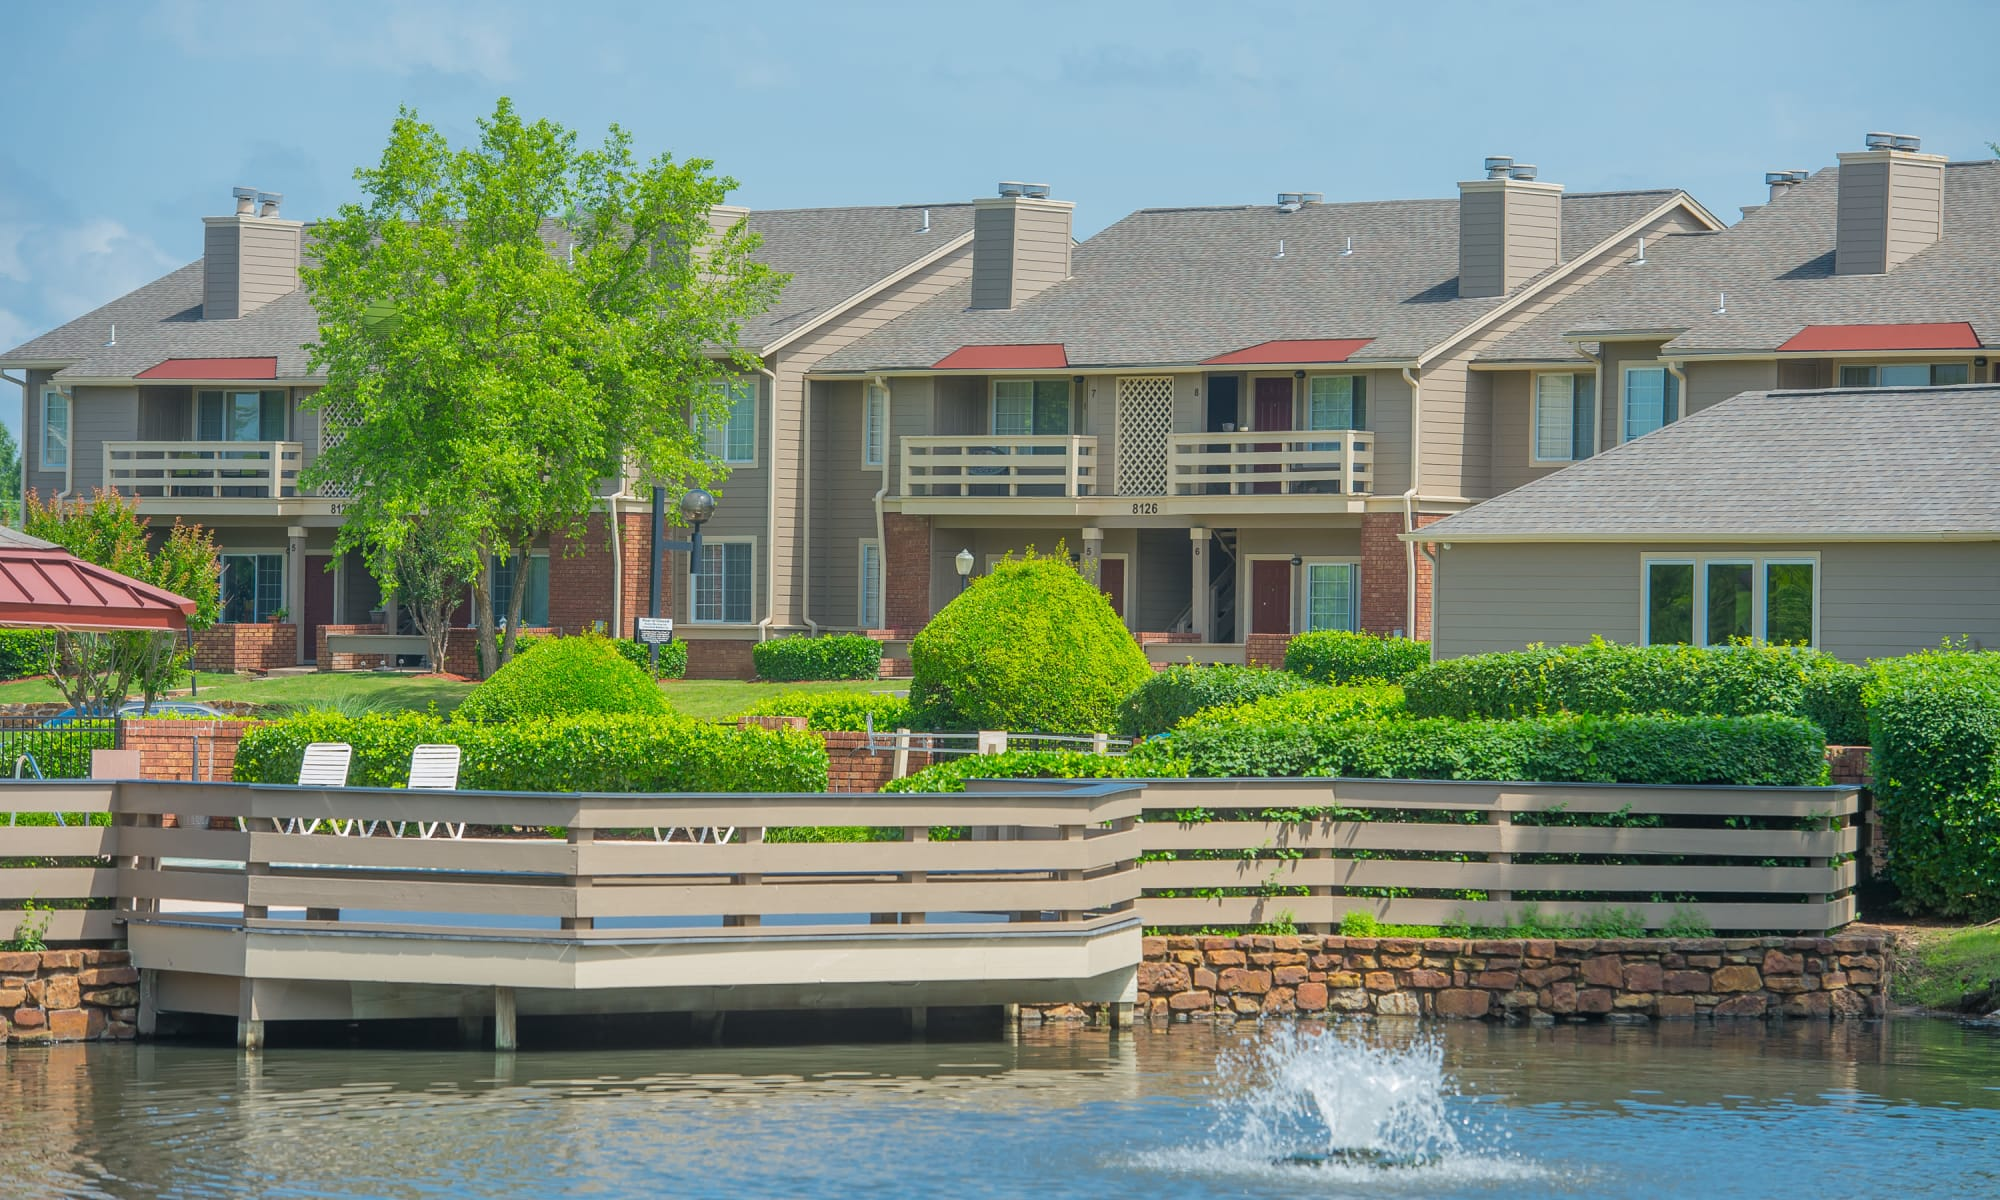 Apartments at Sheridan Pond in Tulsa, Oklahoma